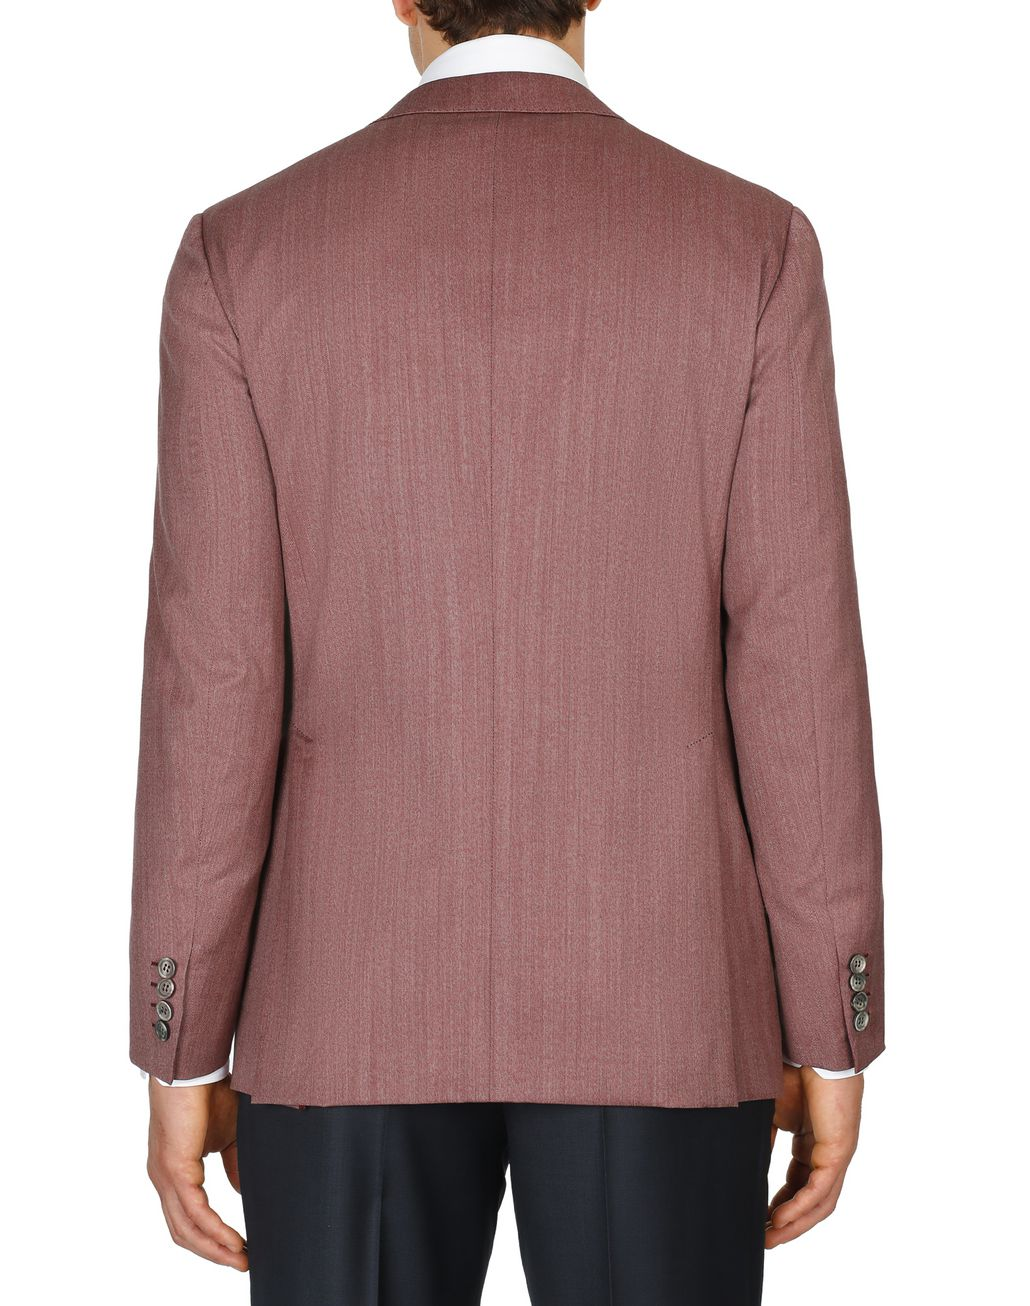 BRIONI Bordeaux Herringbone Plume Jacket Suits & Jackets Man d